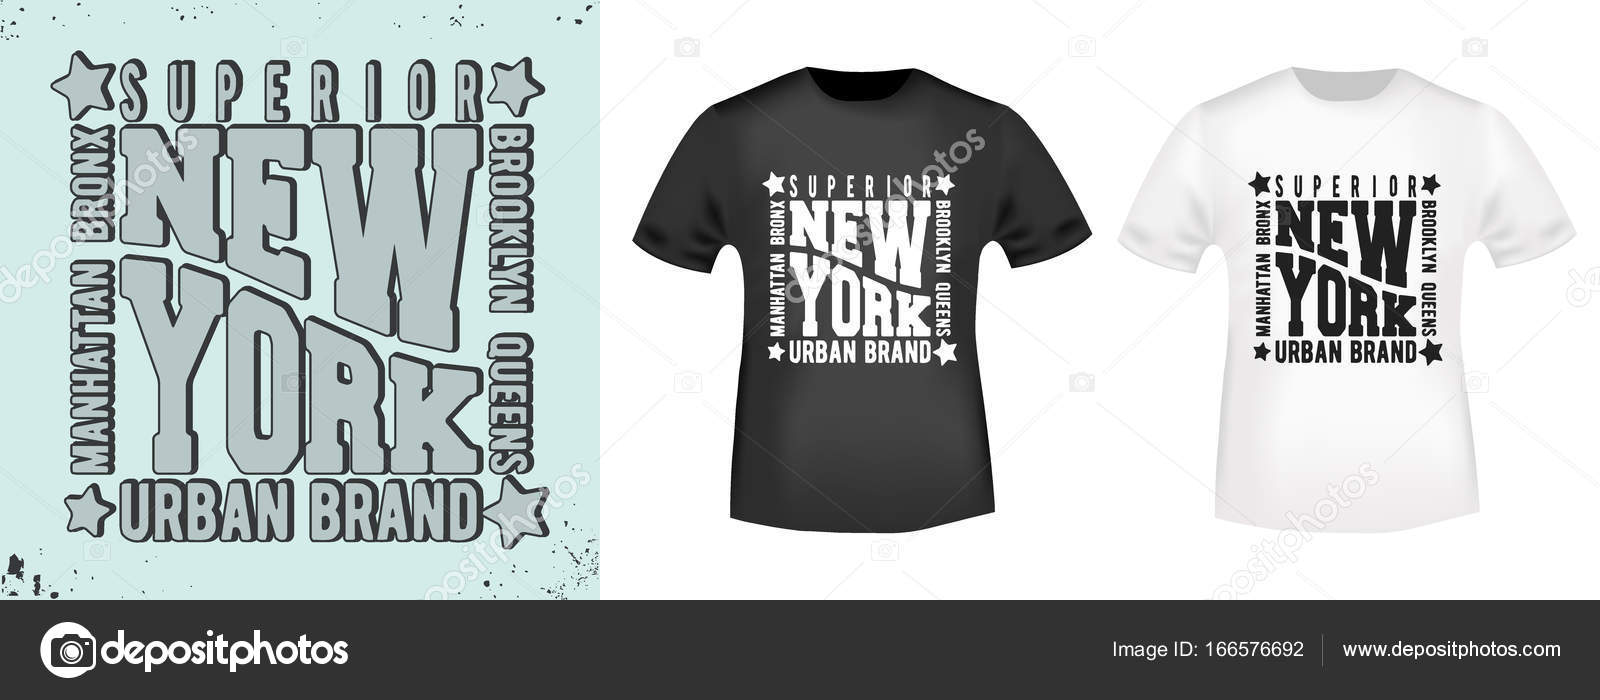 e8b75401c T-shirt print design. Vintage stamp and t shirt mockup. Printing and badge  applique label t-shirts, jeans, casual wear. Vector illustration.